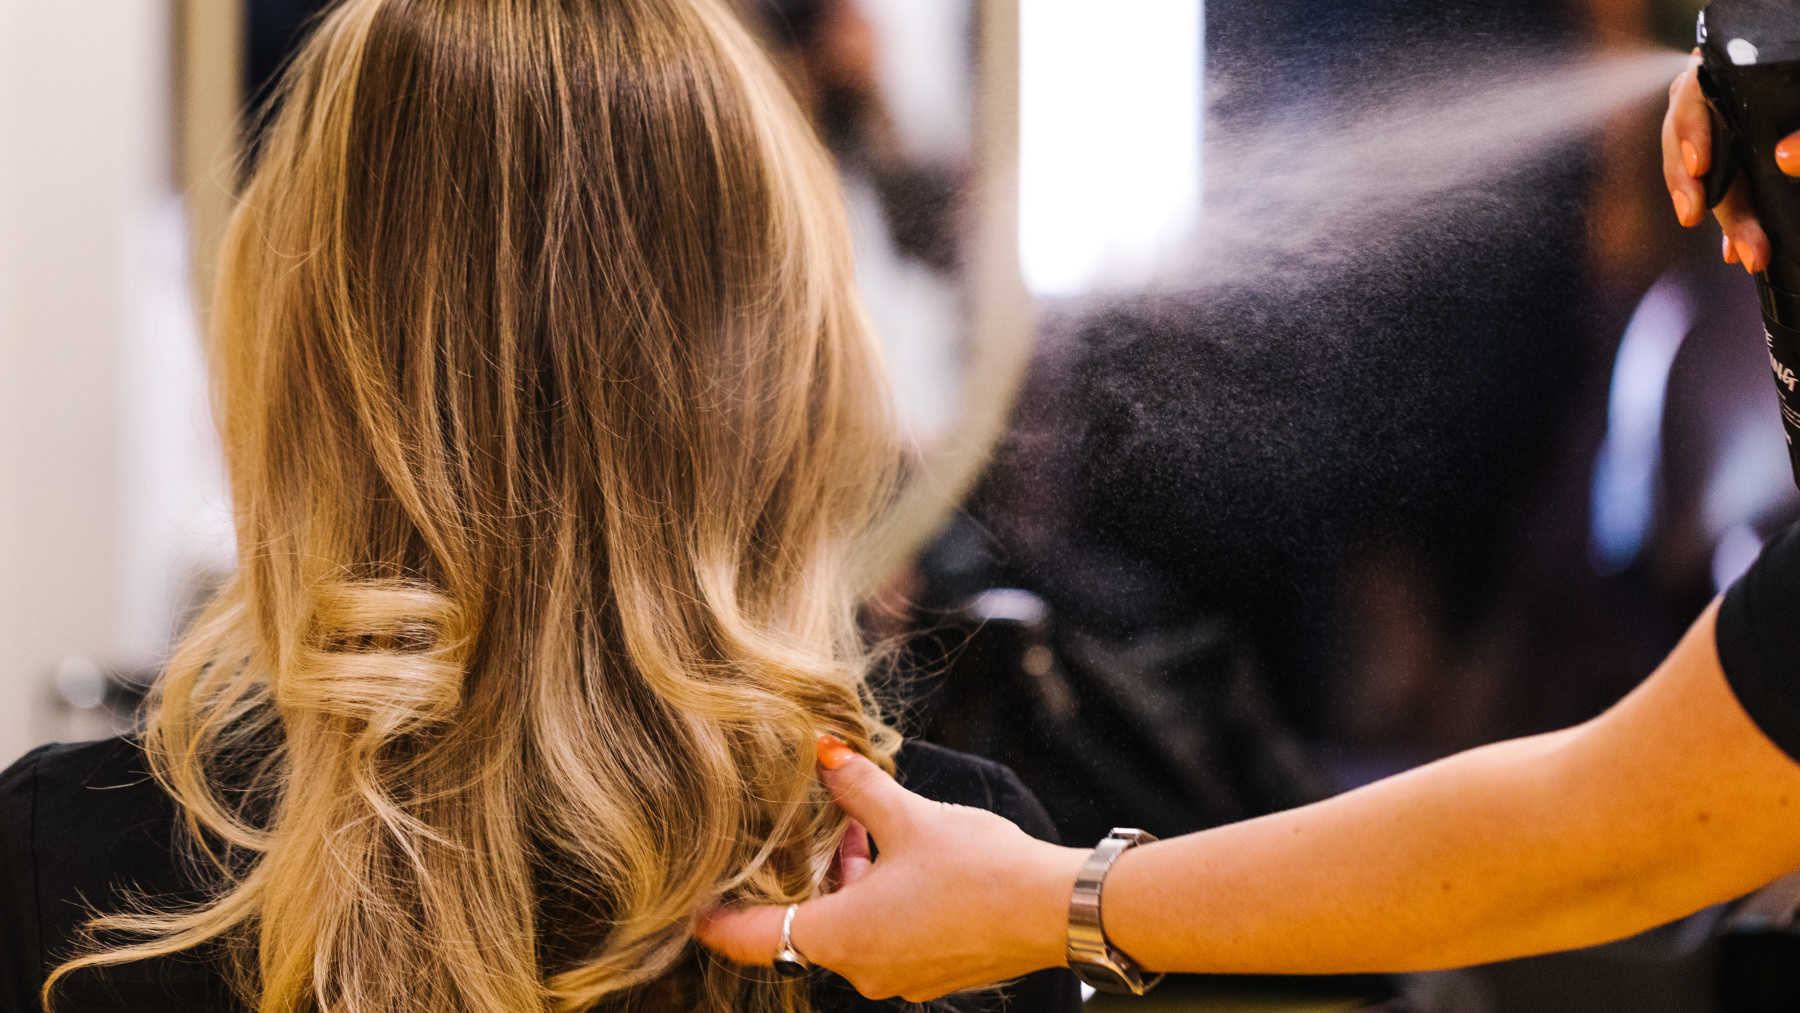 An image of a person with long blond hair on heir back, their hair is being sprayed with product